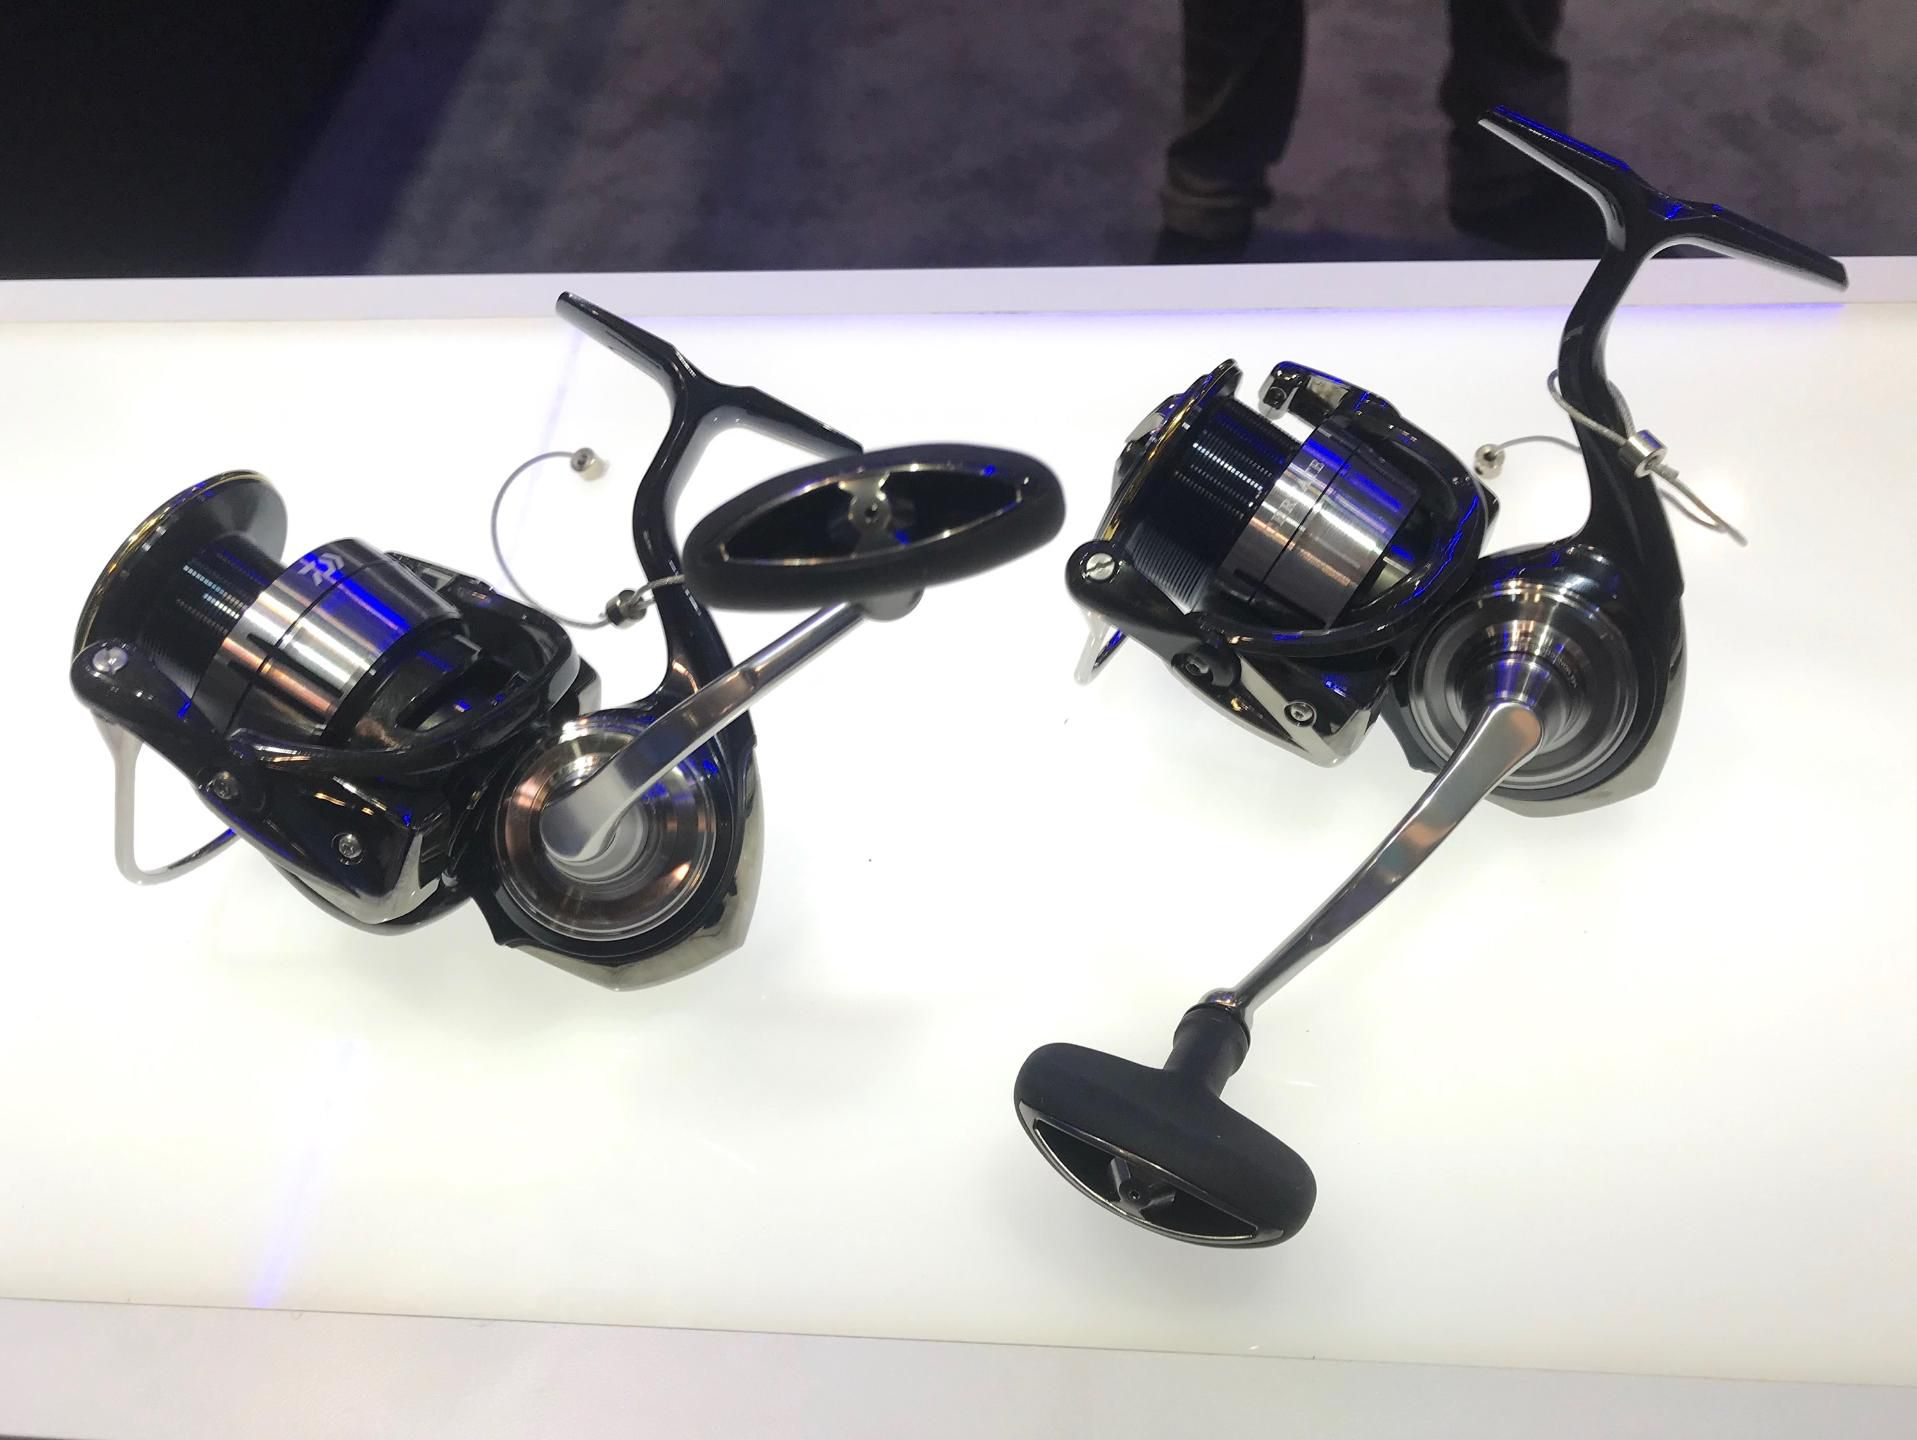 Daiwa's new Certate LT spinning reels feature smaller, leaner bodies that are lightweight but very strong and smooth, ideal for tough light-tackle battles. Available in 4 sizes from 2500 to 5000 and 2 different retrieve ratios 5.2:1 and 6.2:1.